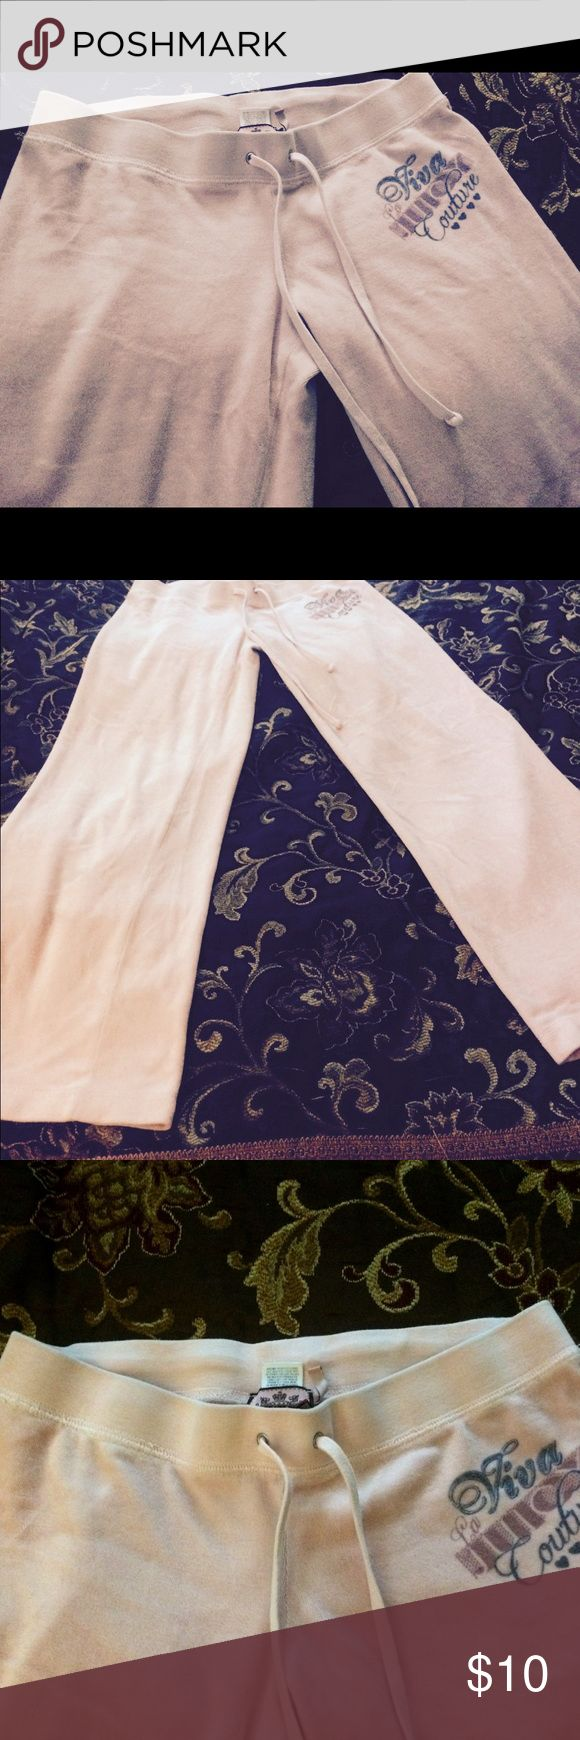 Juicy Couture velour plants light pink small Juicy Couture velour light pink pants. Worn twice inside the house. Size Small. No flaws. Juicy Couture Pants Track Pants & Joggers